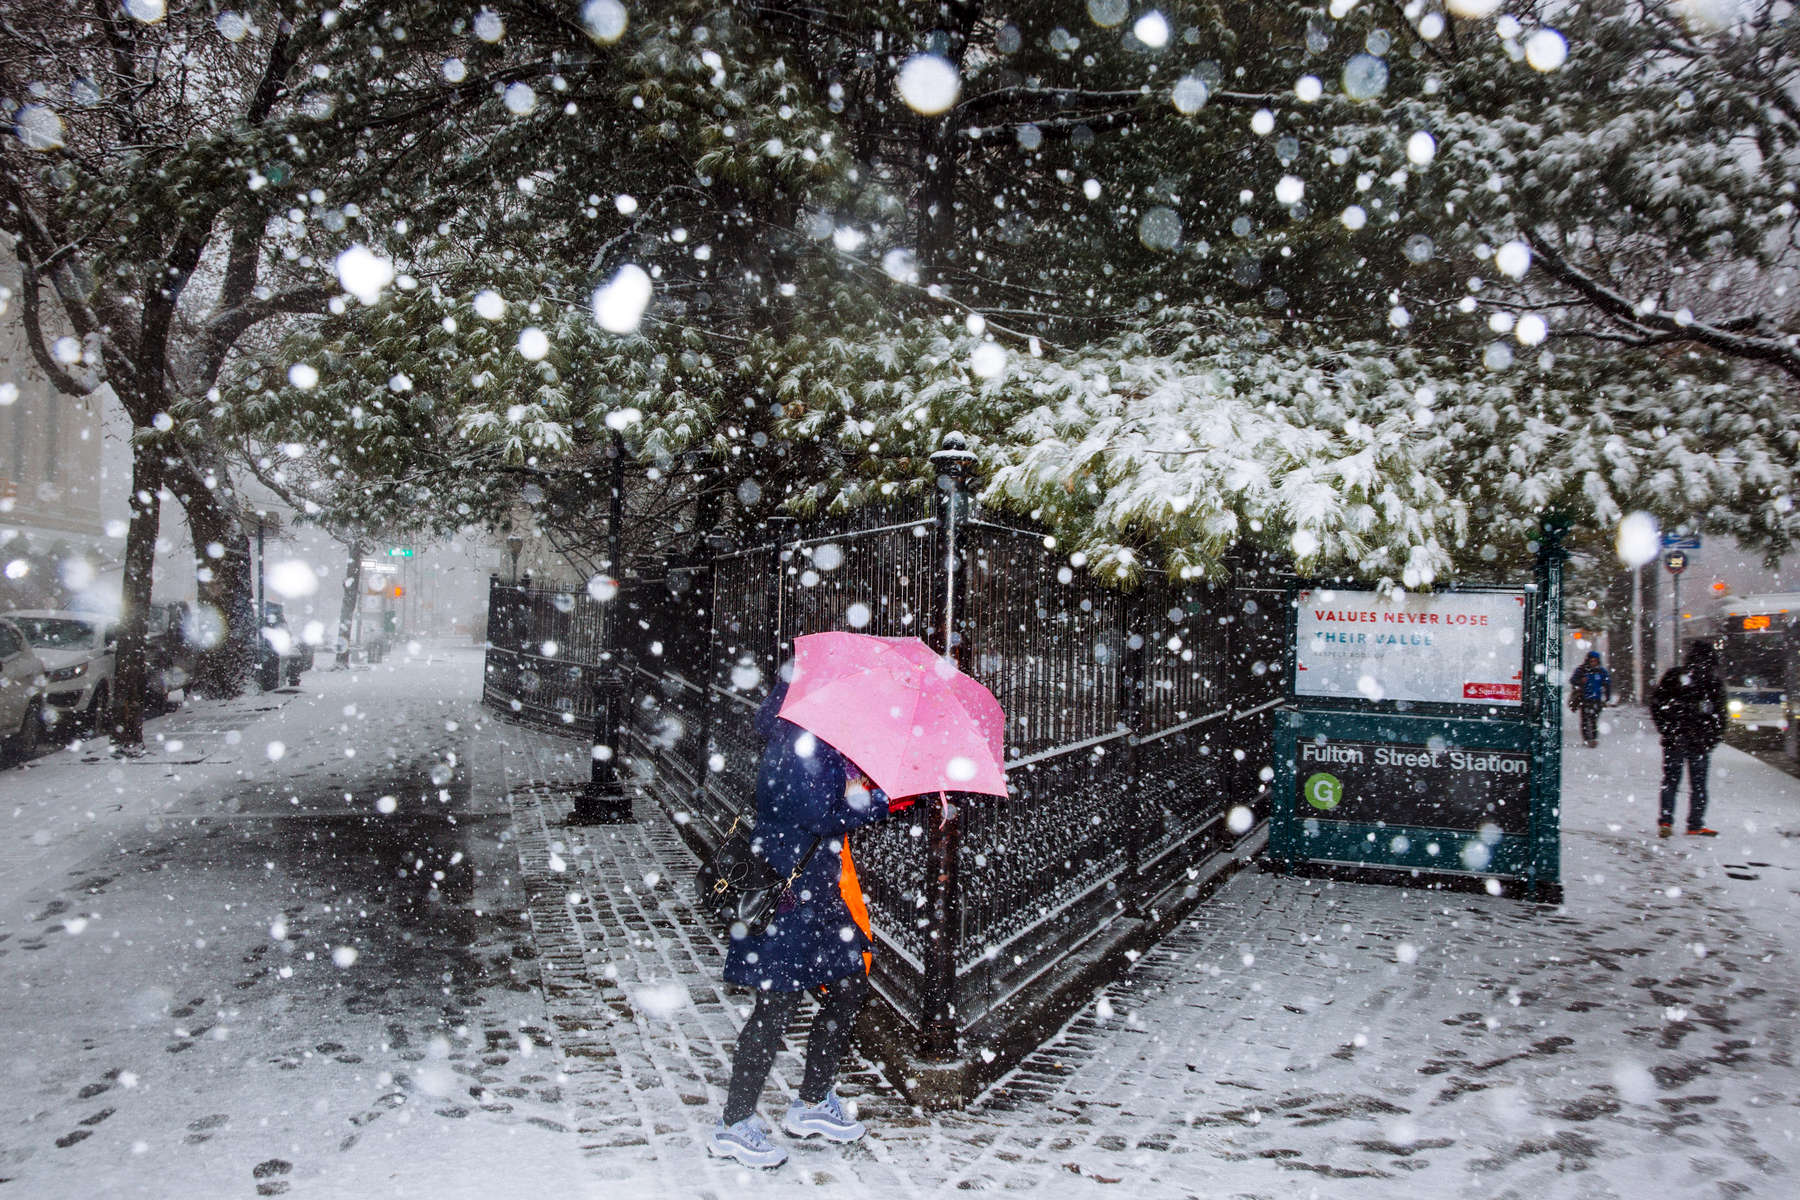 Brooklyn, NY - March 21, 2018: The first snowfall of spring began early in the morning commute in Brooklyn, NY. Heavy snowfall is expected throughout the day.  CREDIT: Kevin Hagen for The New York Times